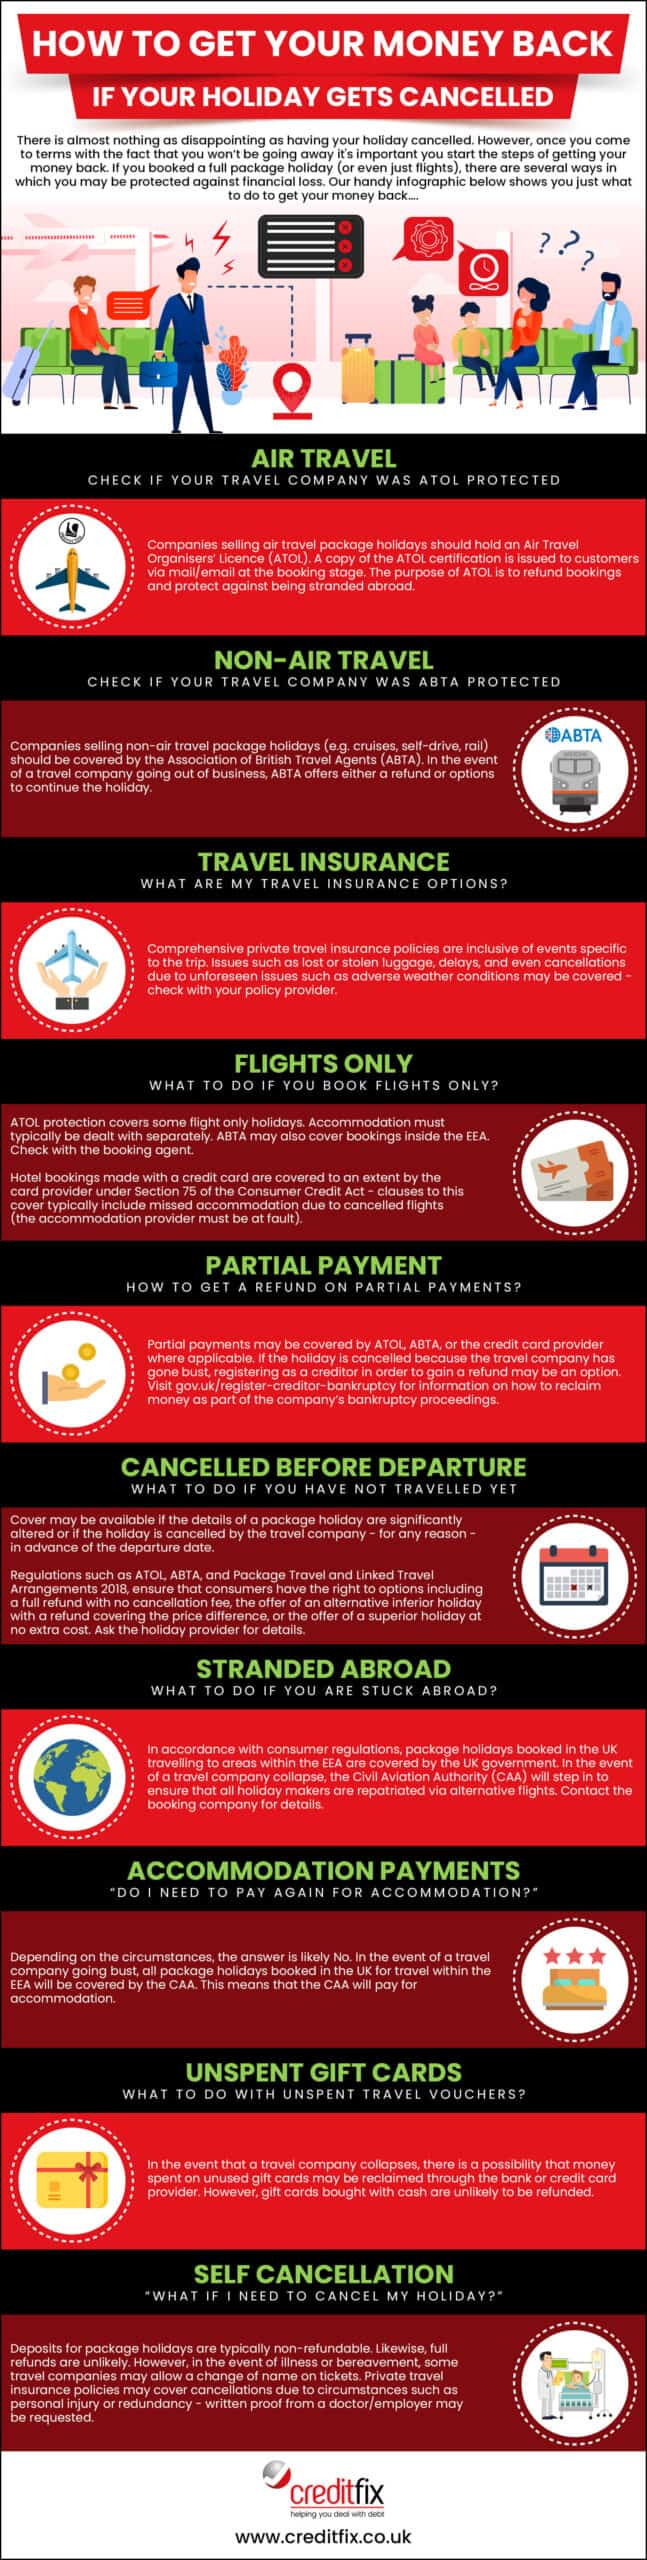 Creditfix Holiday cancellation infographic